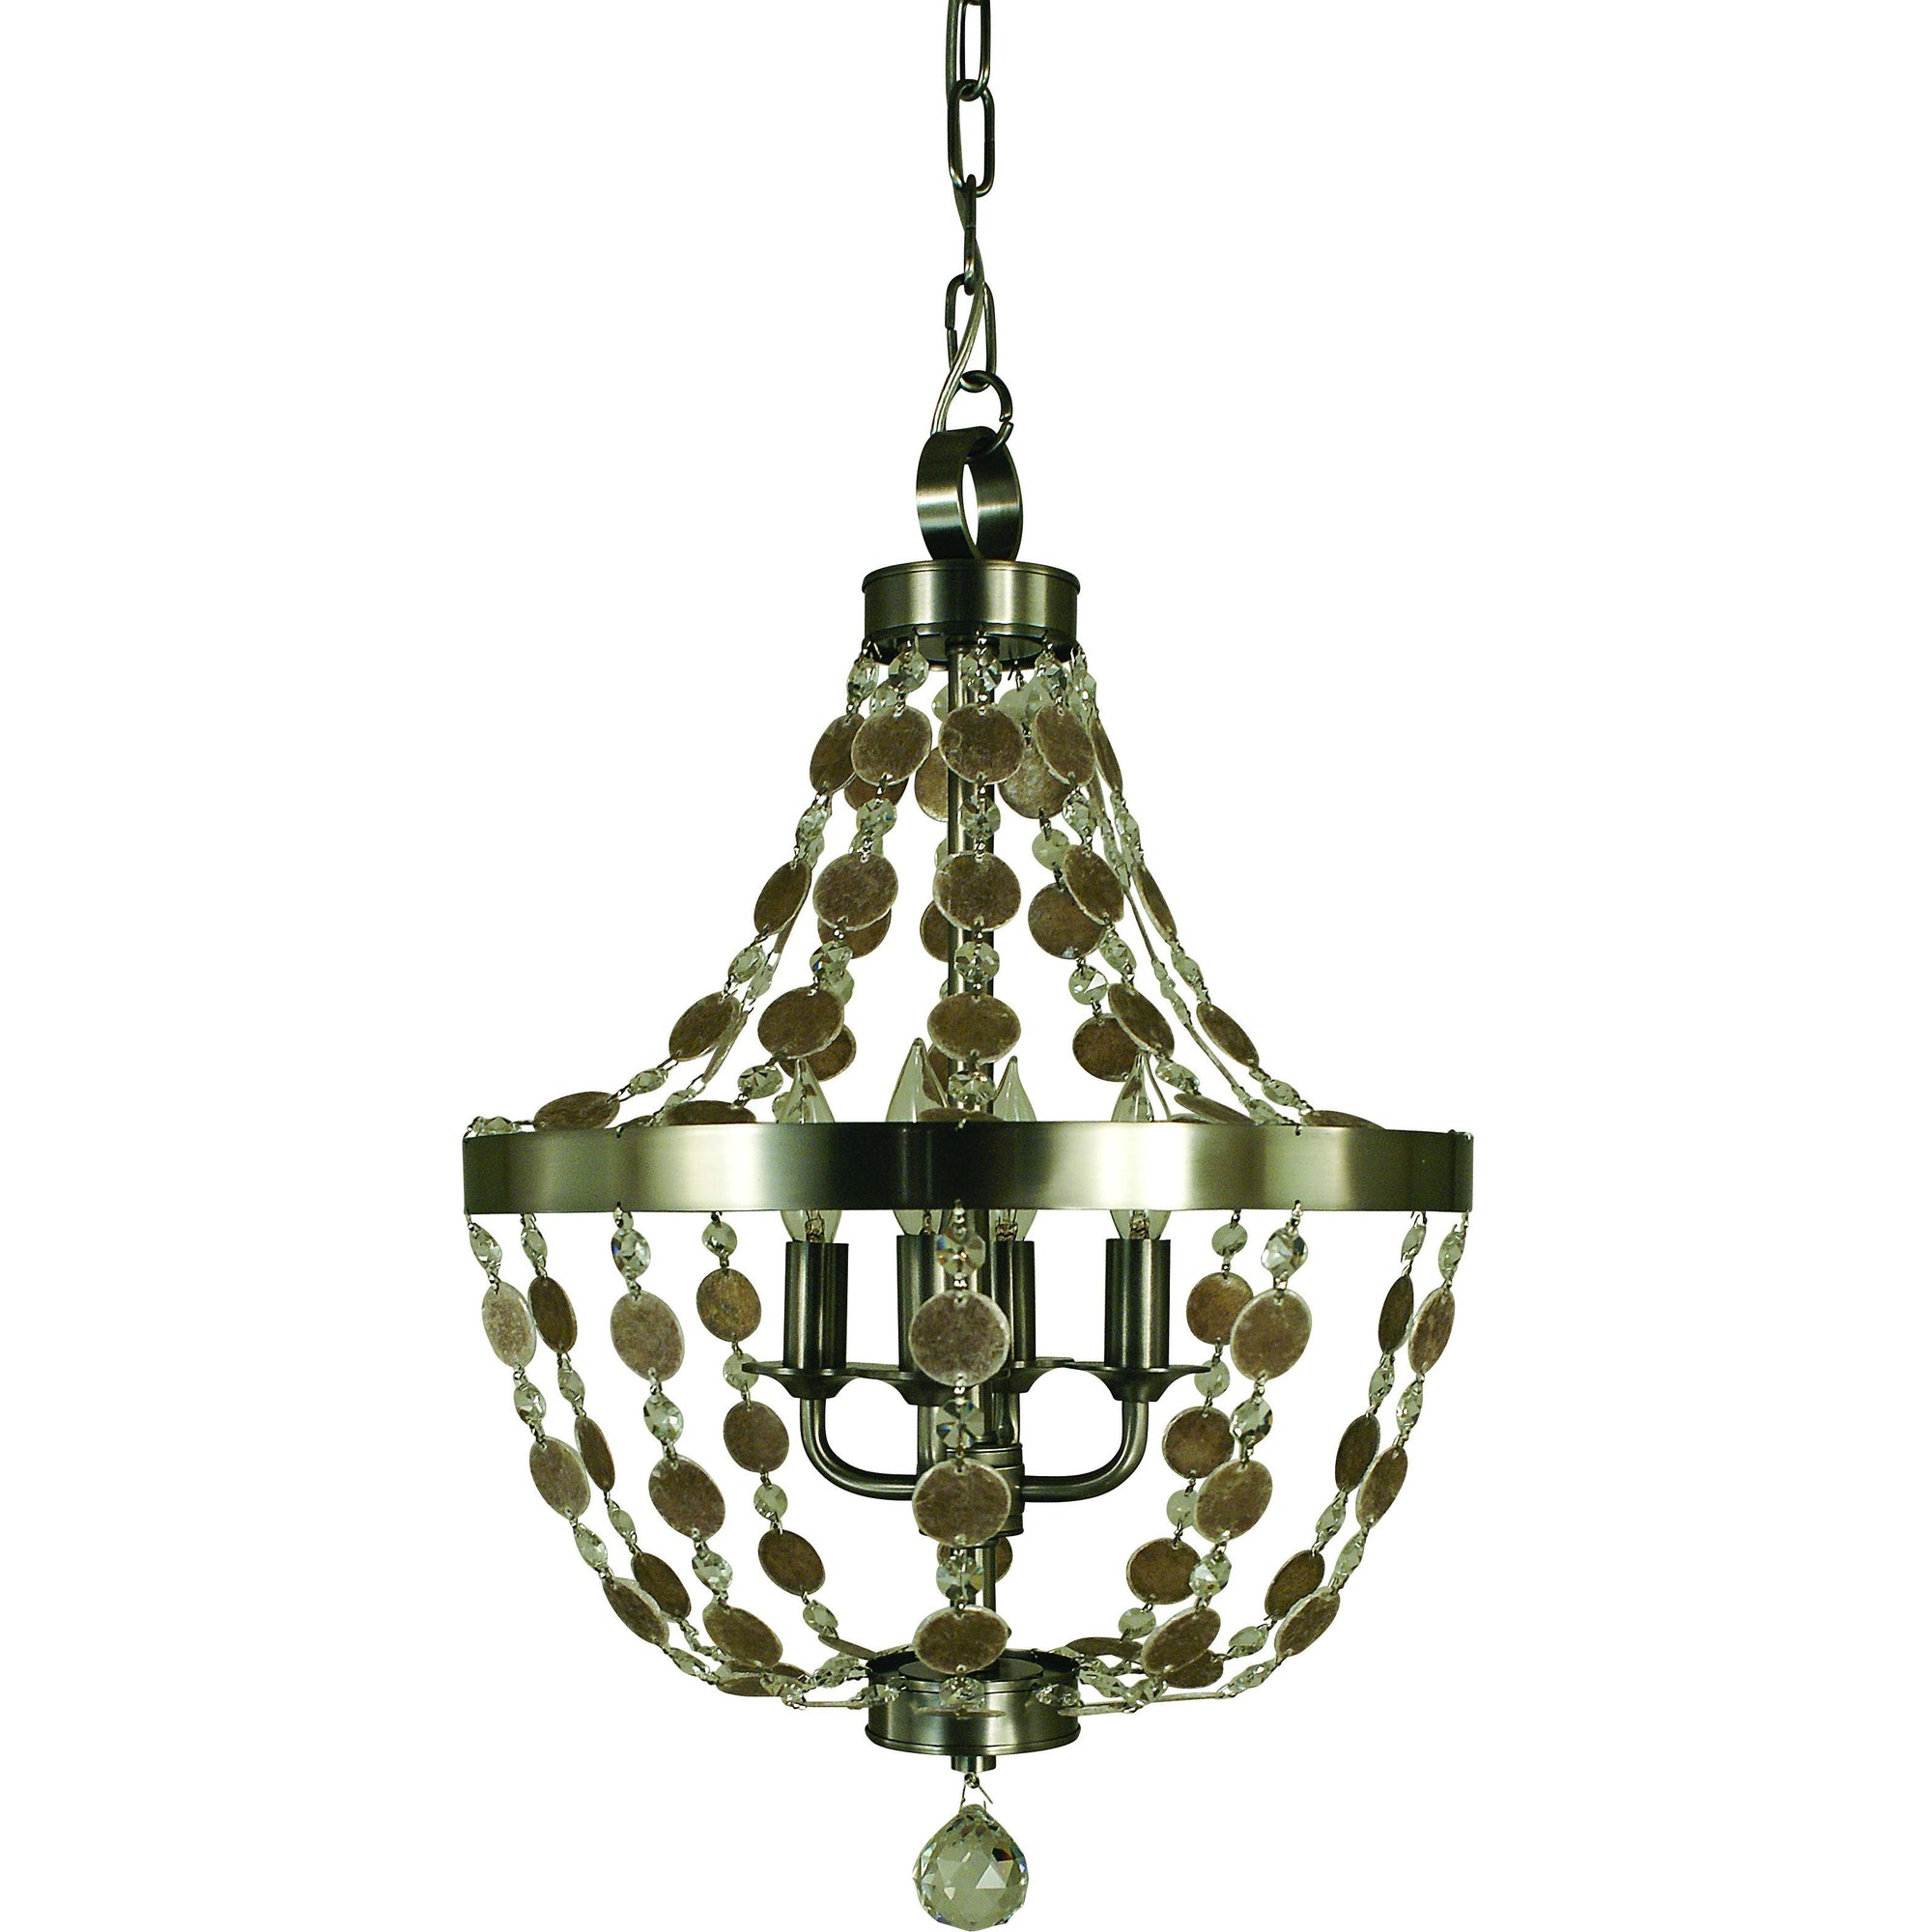 Framburg Mini Chandeliers Brushed Nickel 4-Light Brushed Nickel Naomi Chandelier by Framburg 4484